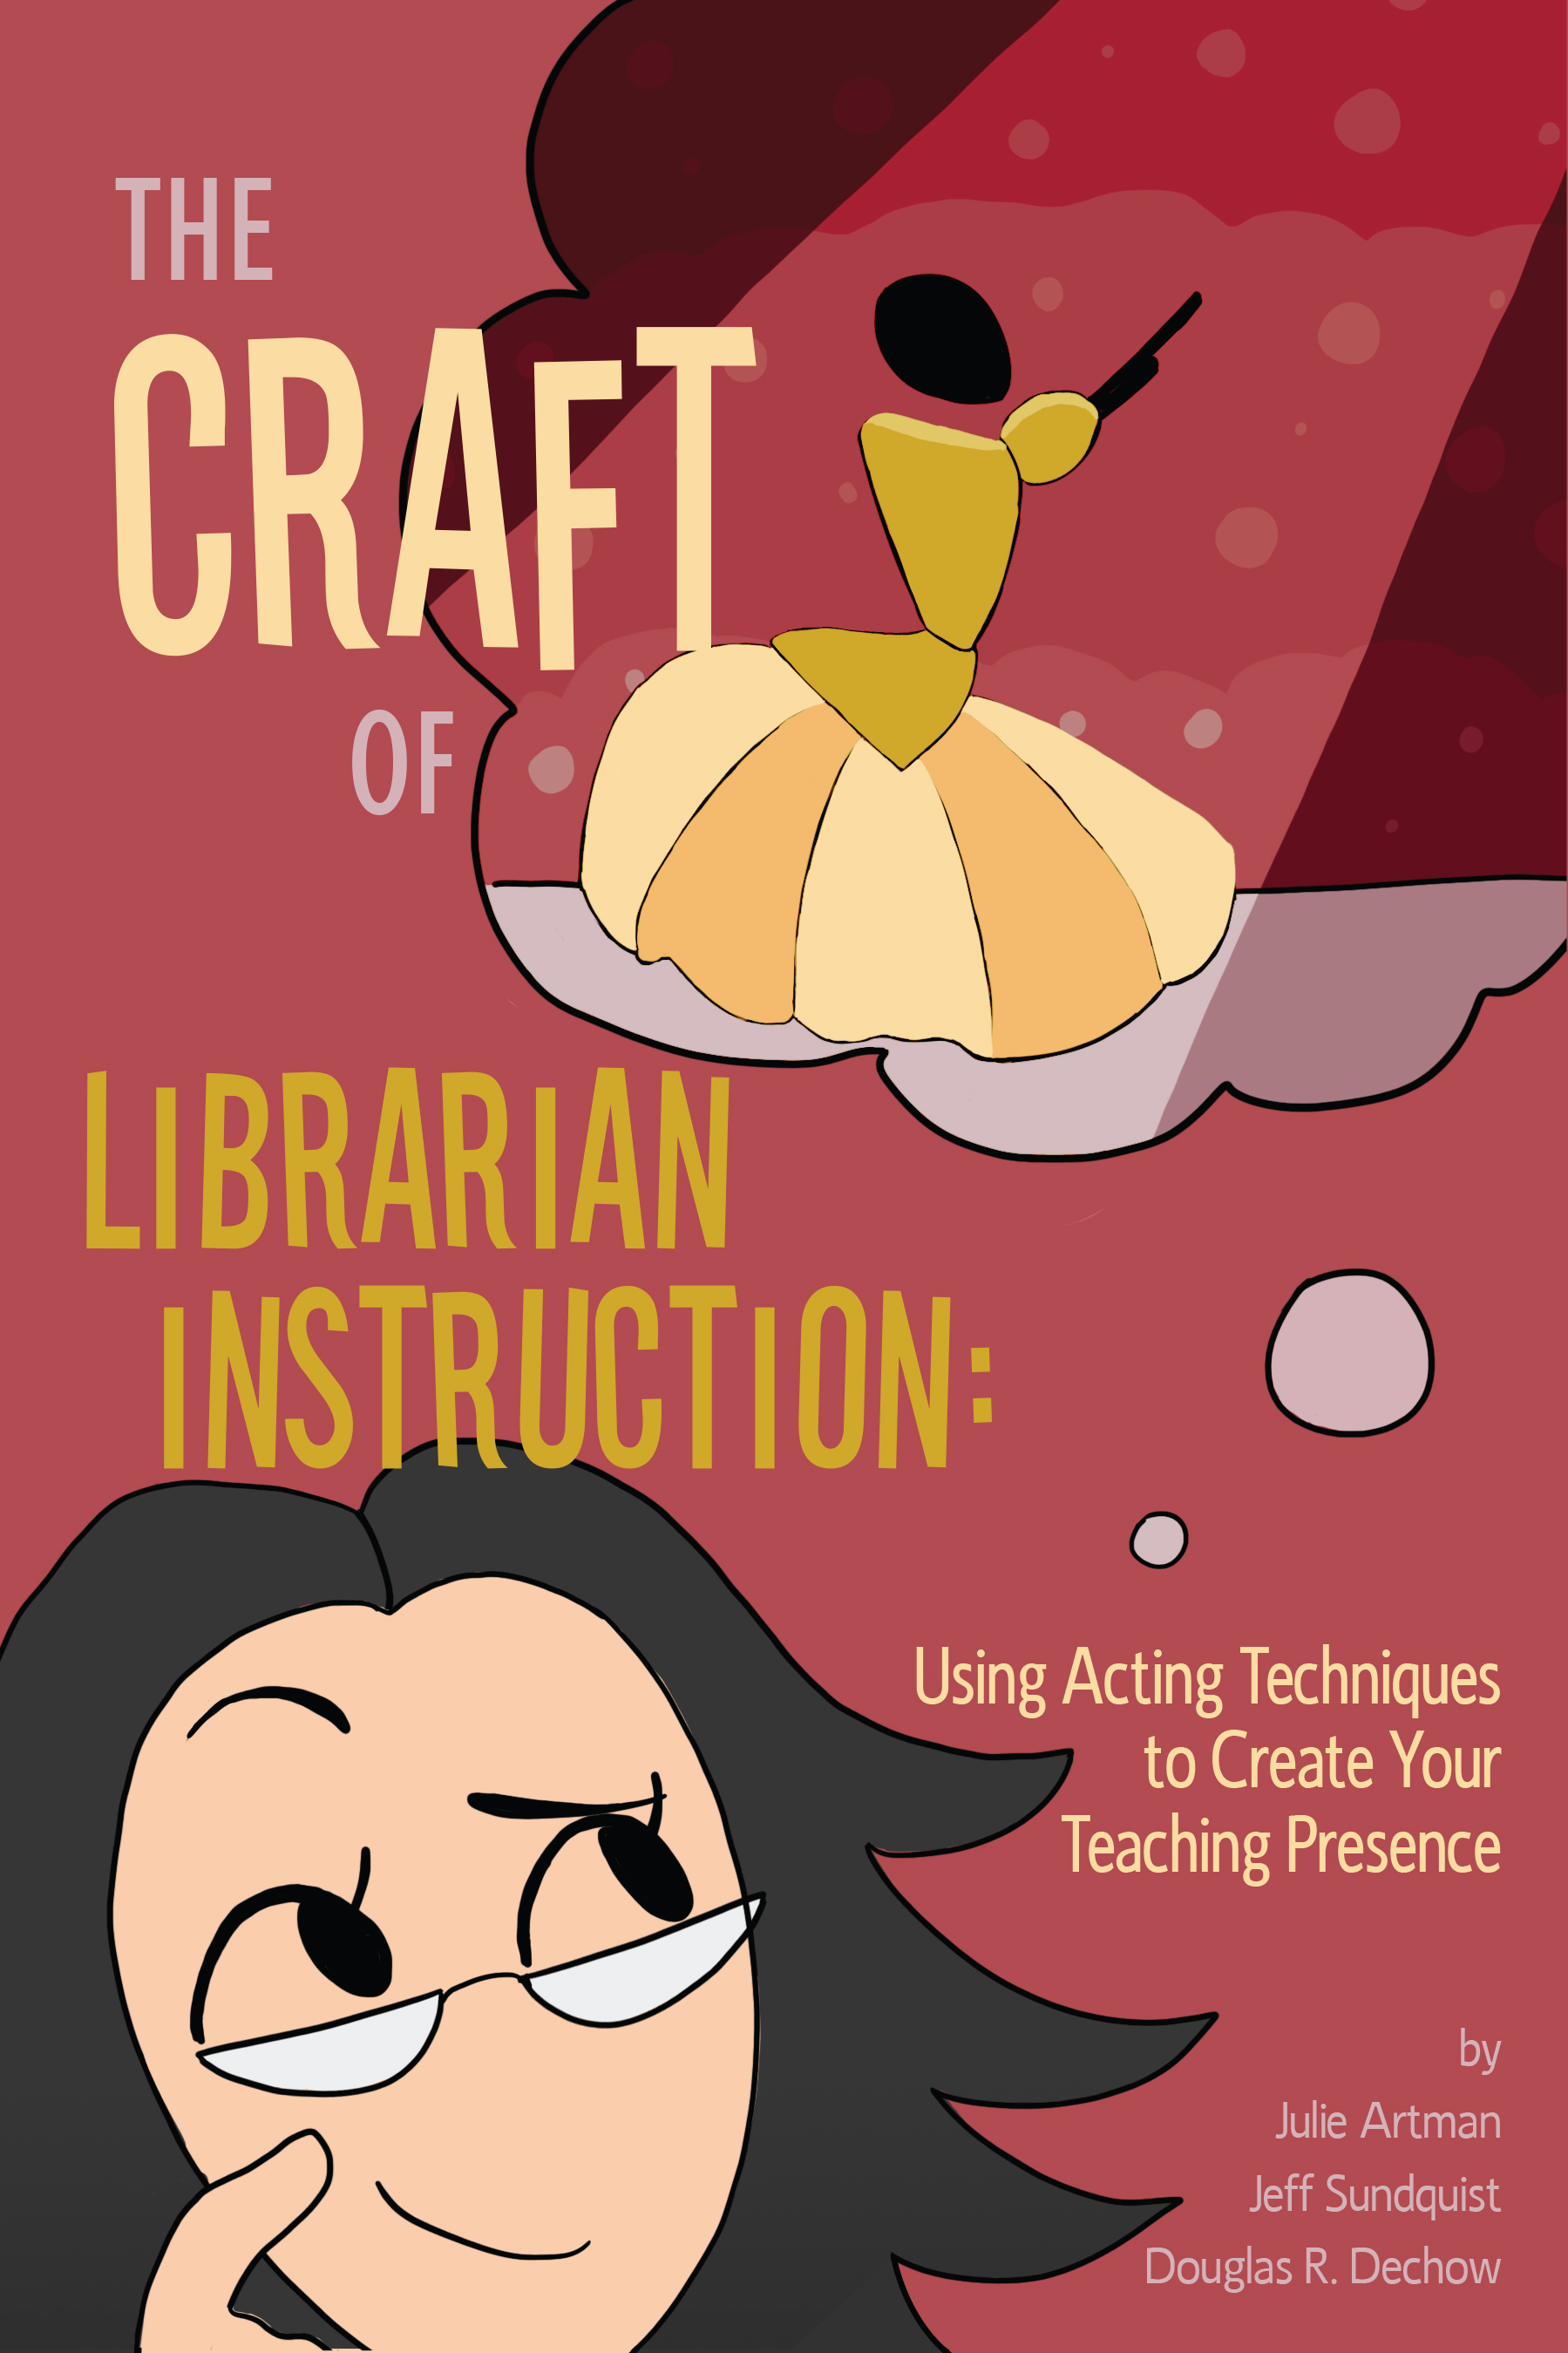 Book cover for The Craft of Library Instruction